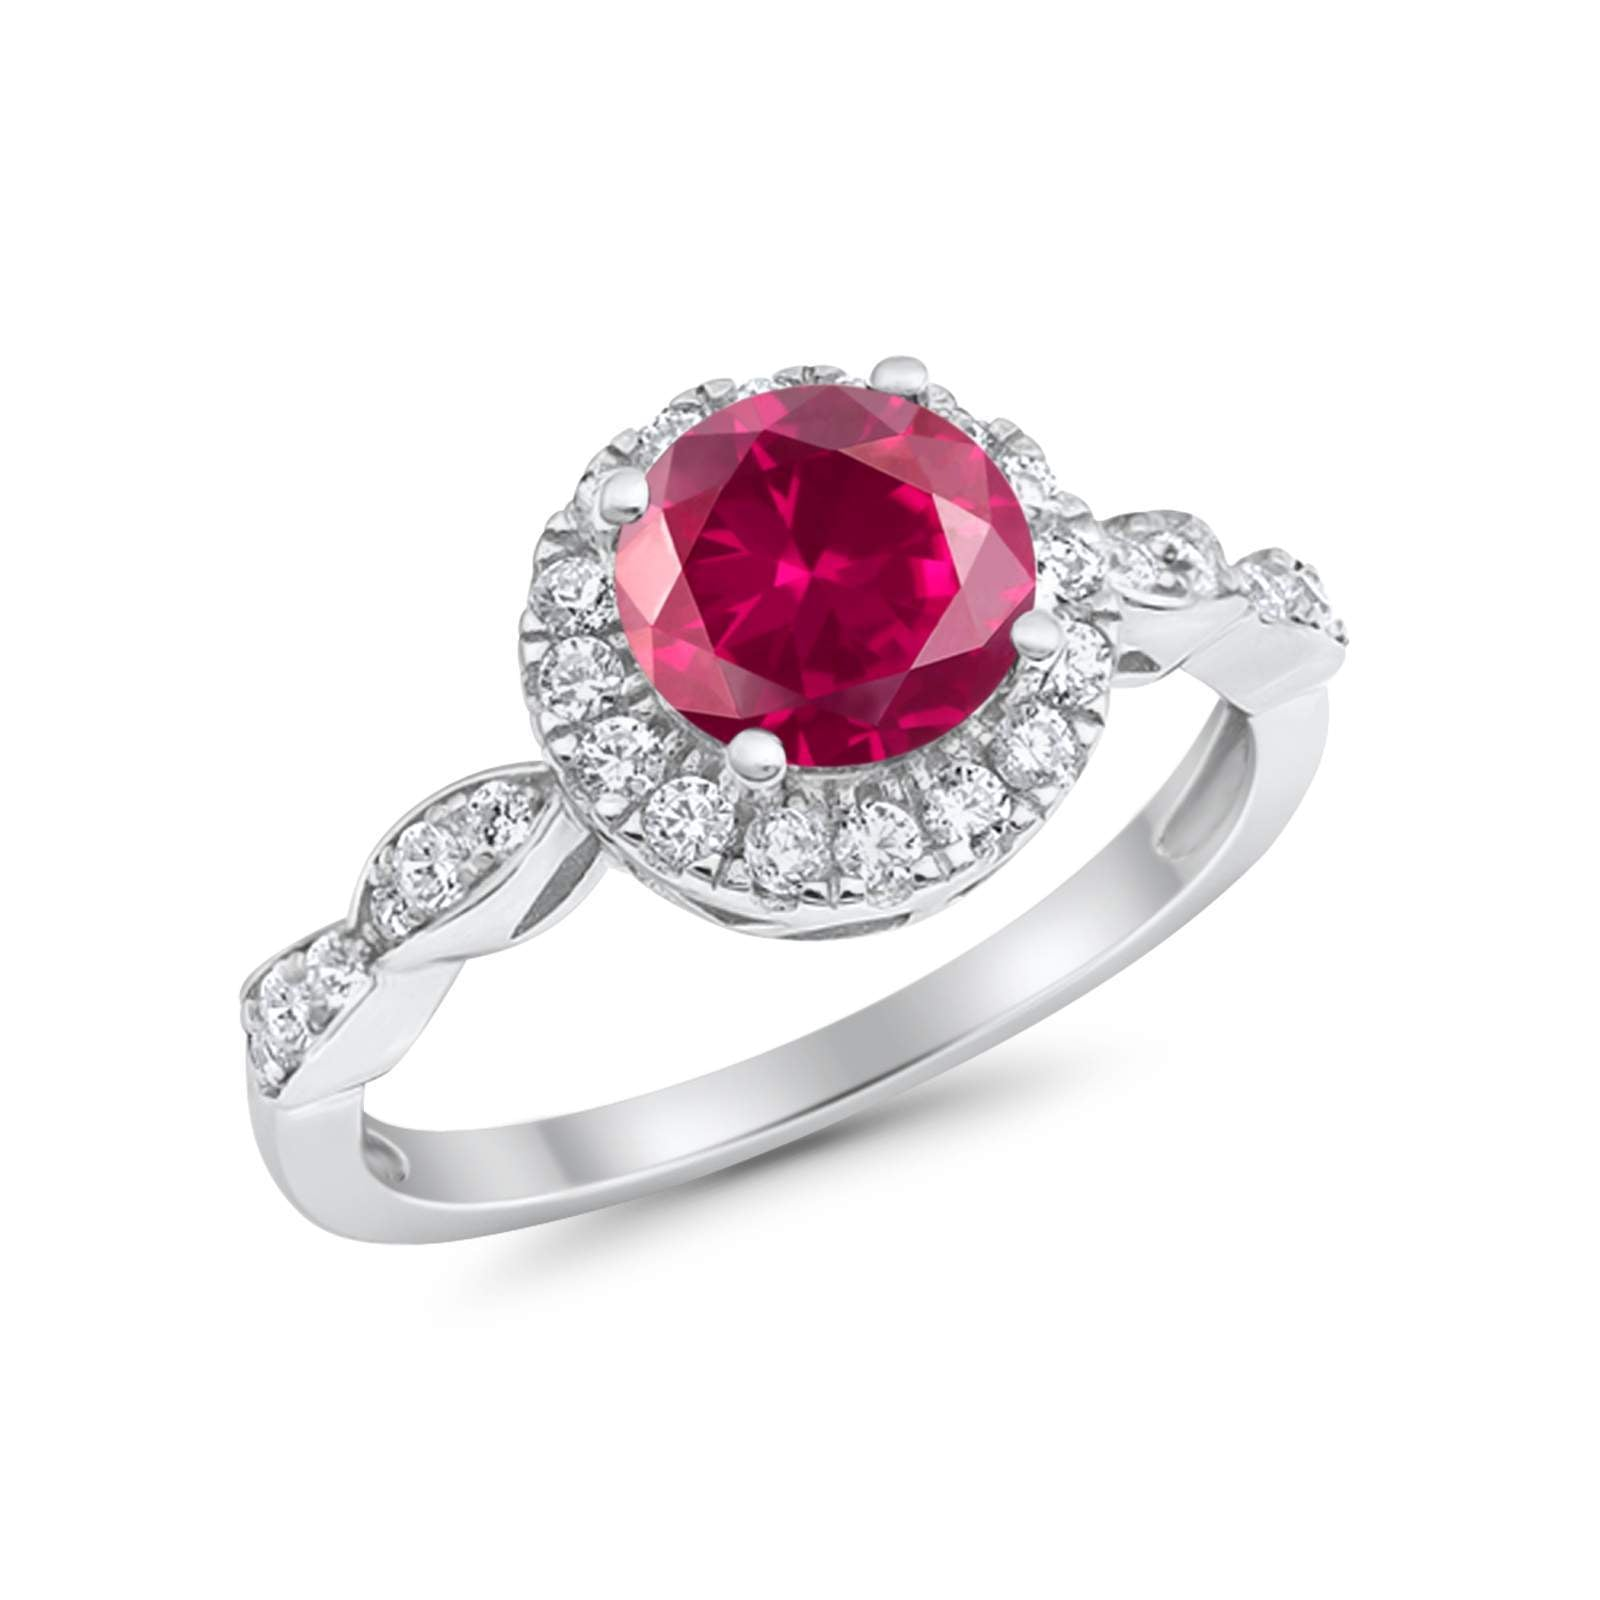 Art Deco Design Engagement Ring Simulated Ruby CZ 925 Sterling Silver